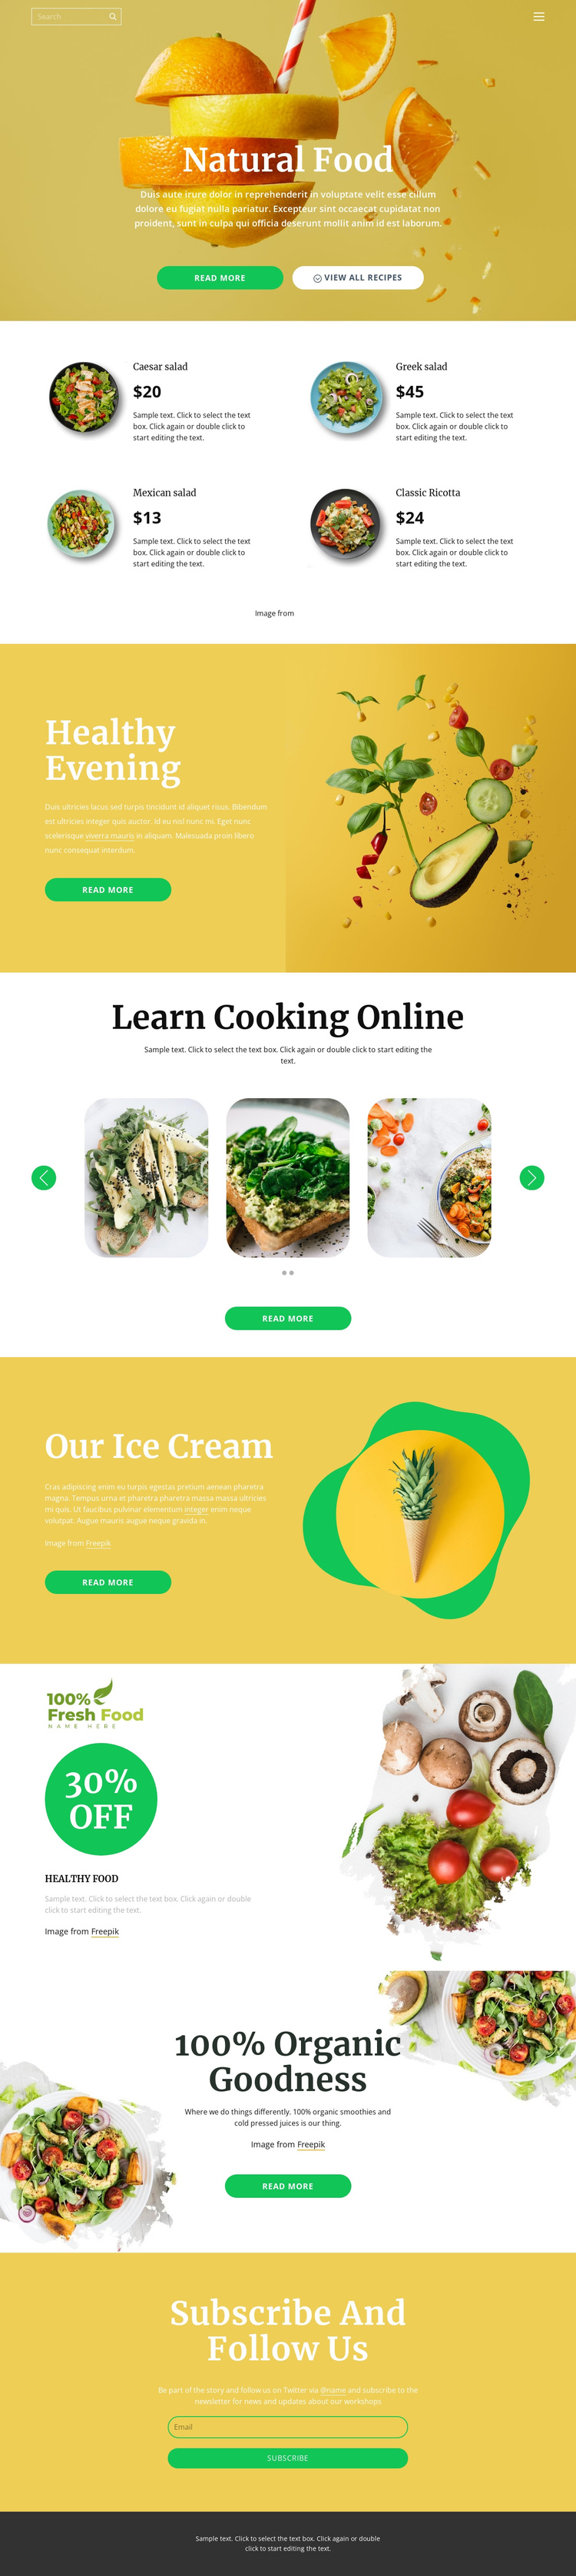 Delicious and healthy food Website Builder Software